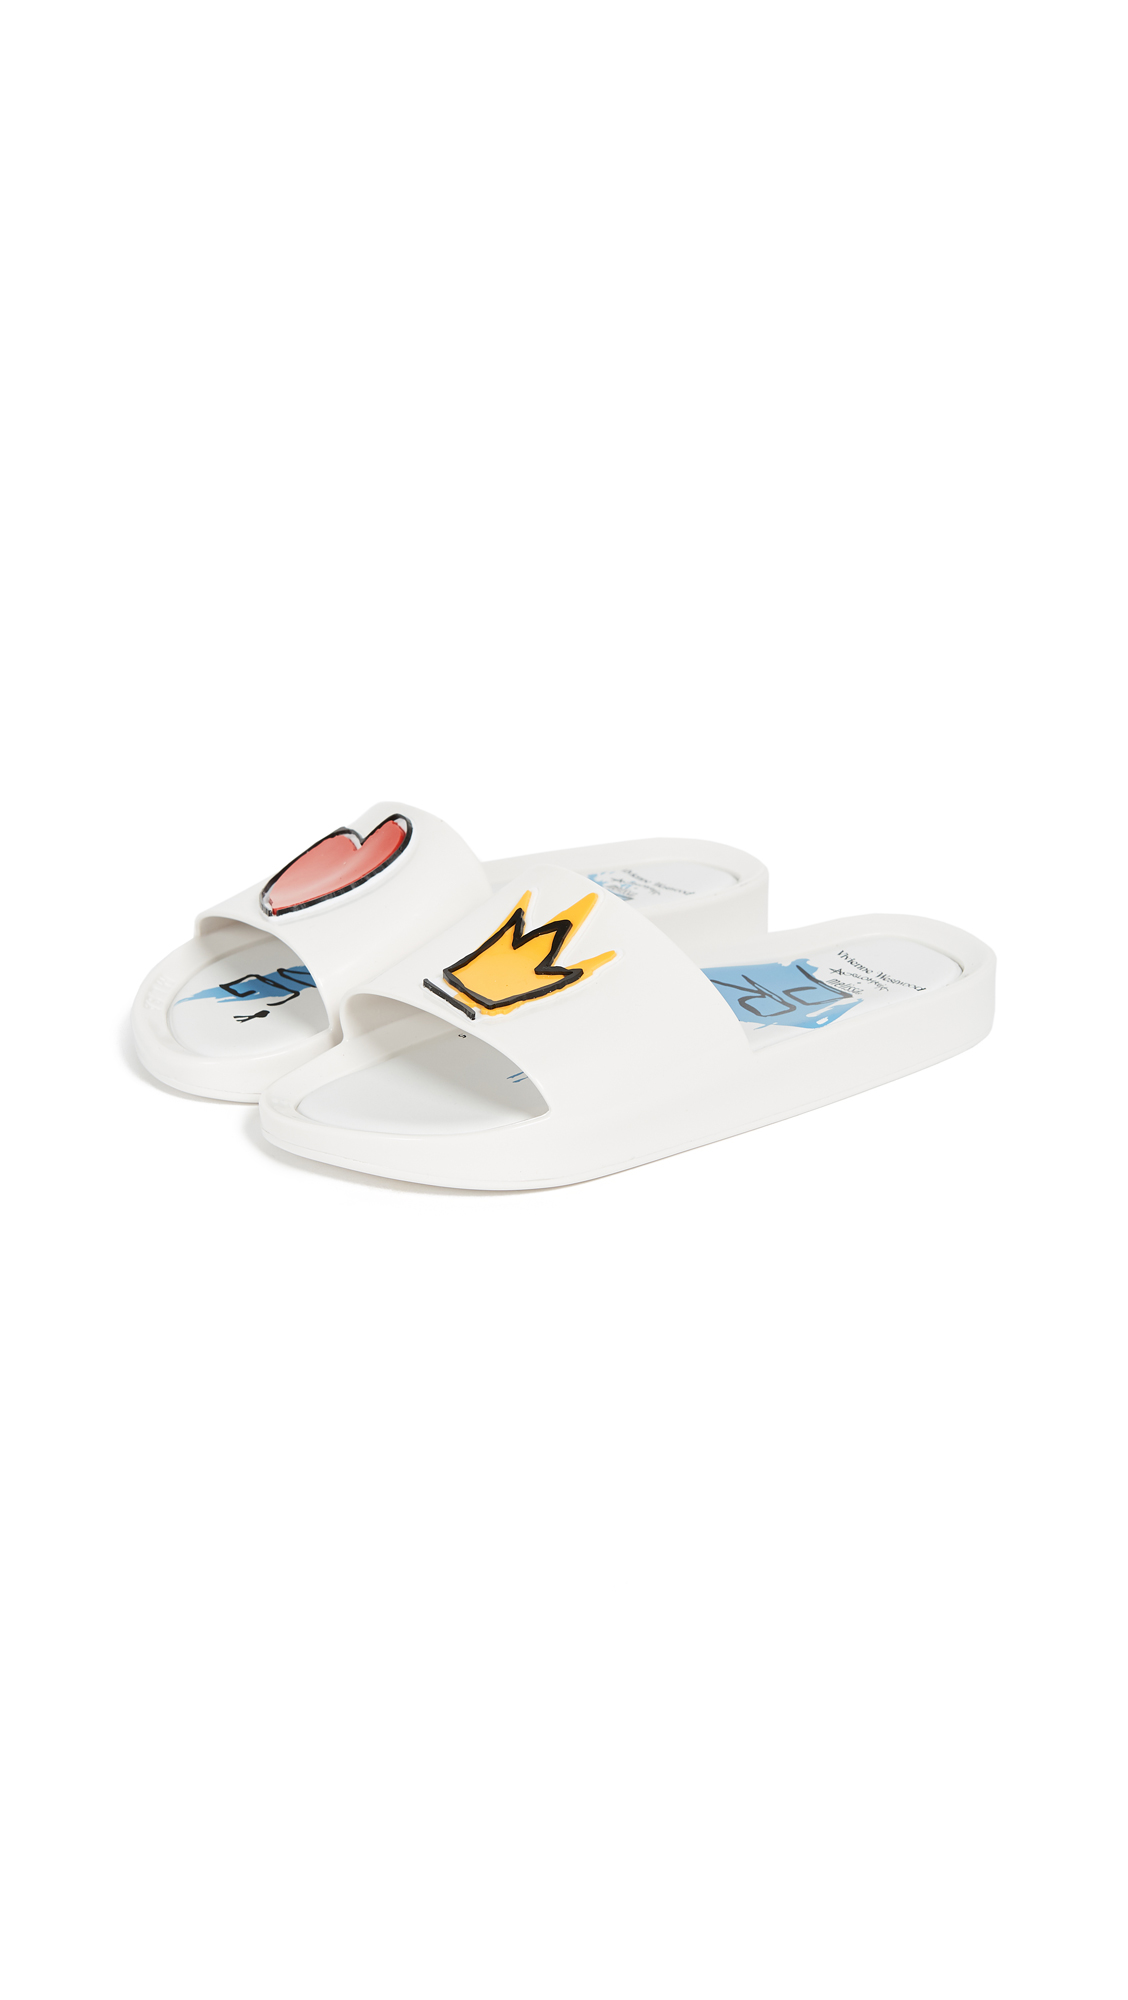 Melissa x Vivienne Westwood Beach Slides II - White/Royal